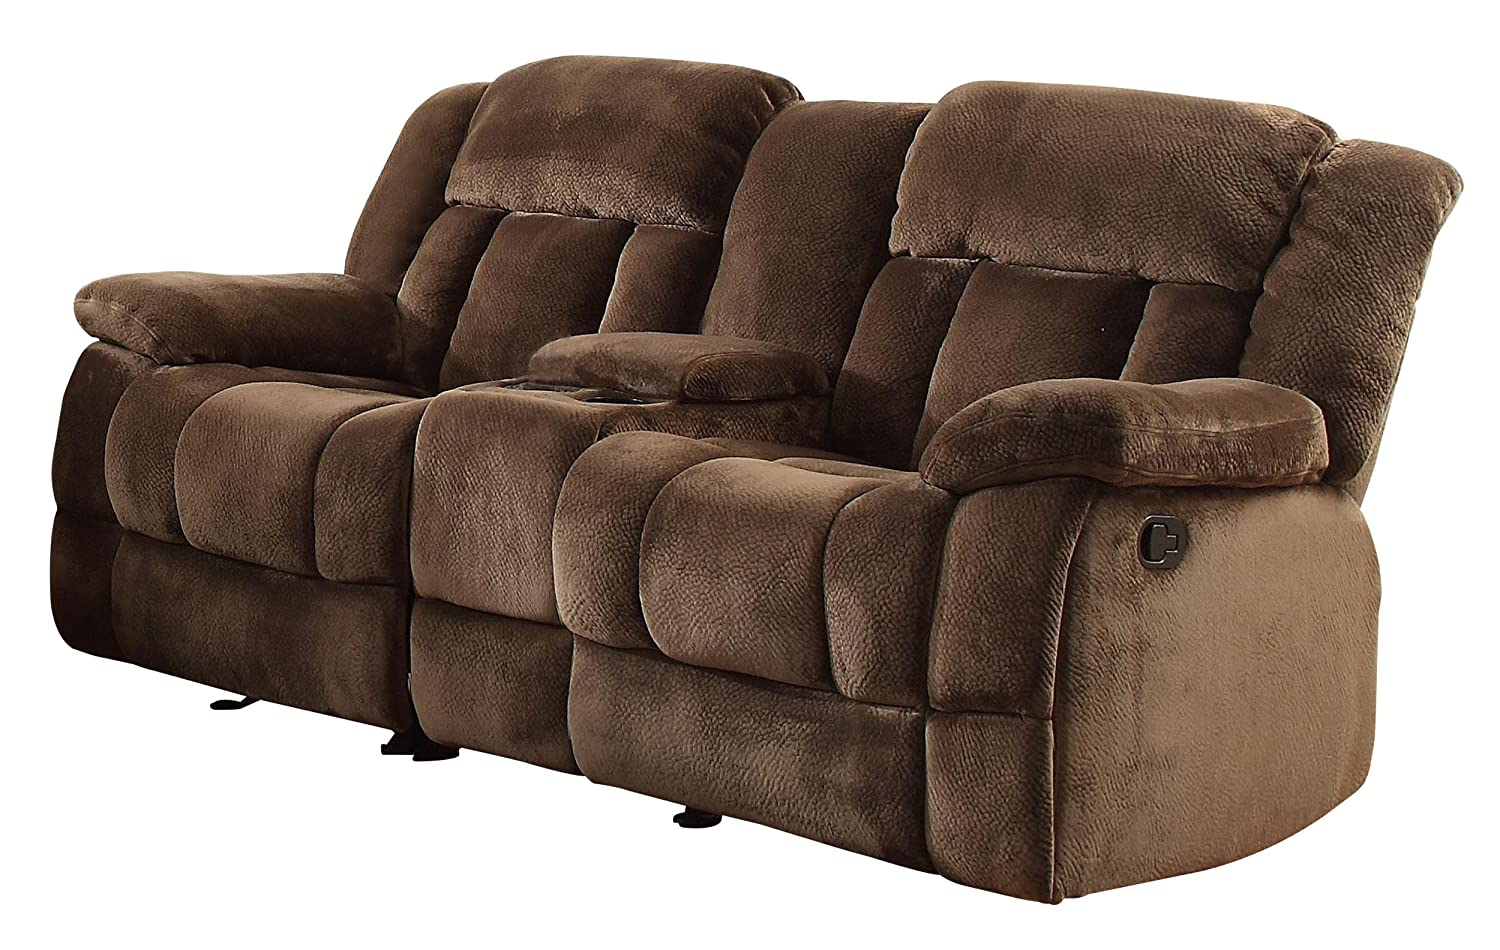 Amazon.com Homelegance 9636-2 Laurelton Textured Plush Microfiber Dual Glider Recliner Love Seat with Console Chocolate Brown Kitchen u0026 Dining  sc 1 st  Amazon.com & Amazon.com: Homelegance 9636-2 Laurelton Textured Plush Microfiber ... islam-shia.org